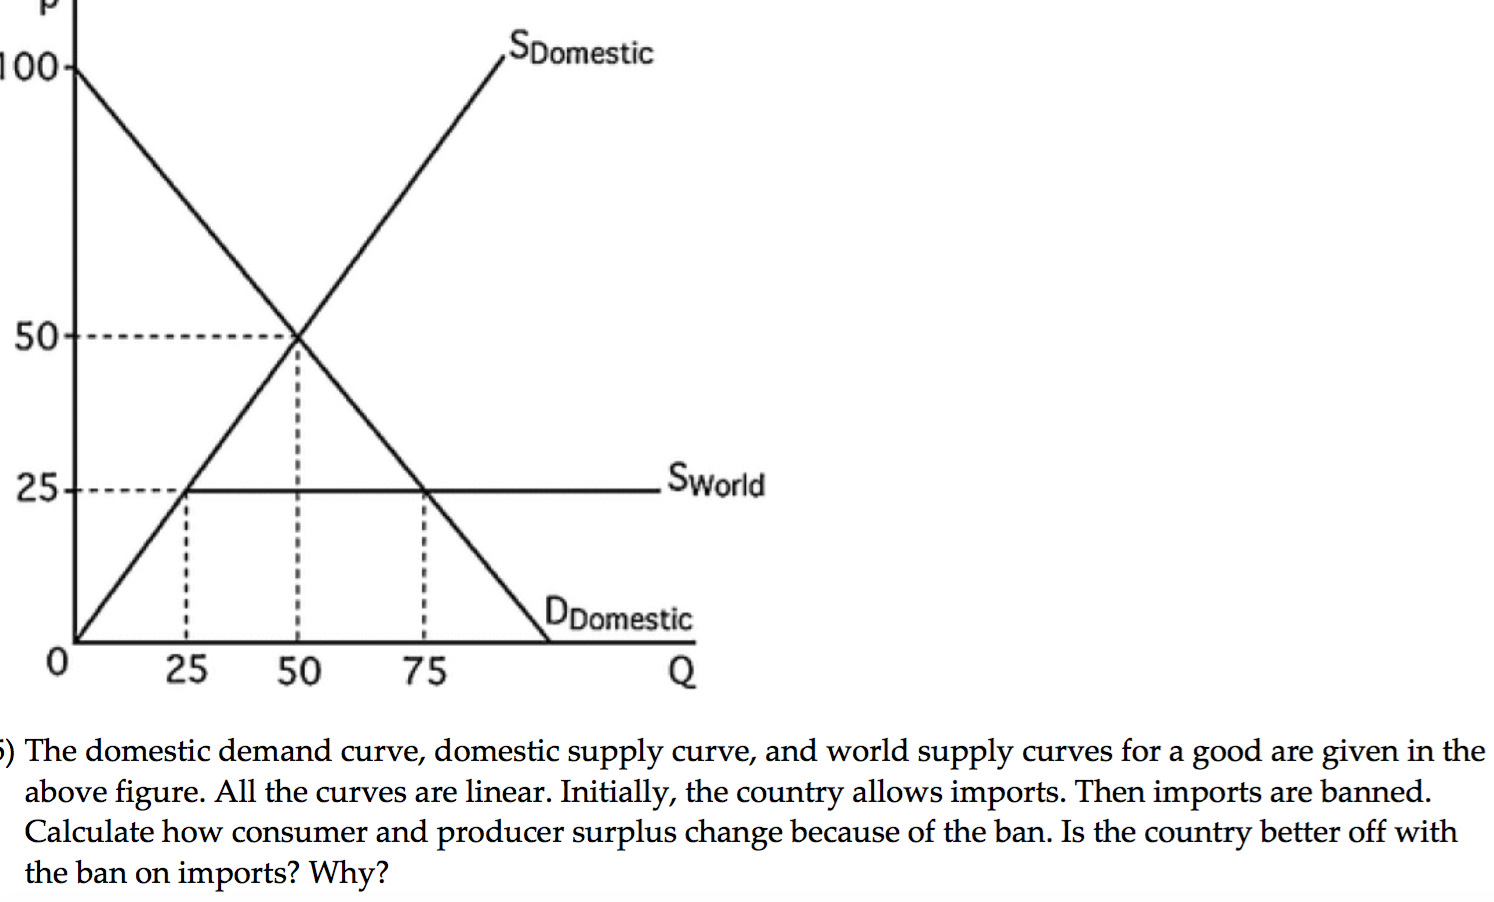 Solved: The Domestic Demand Curve, Domestic Supply Curve